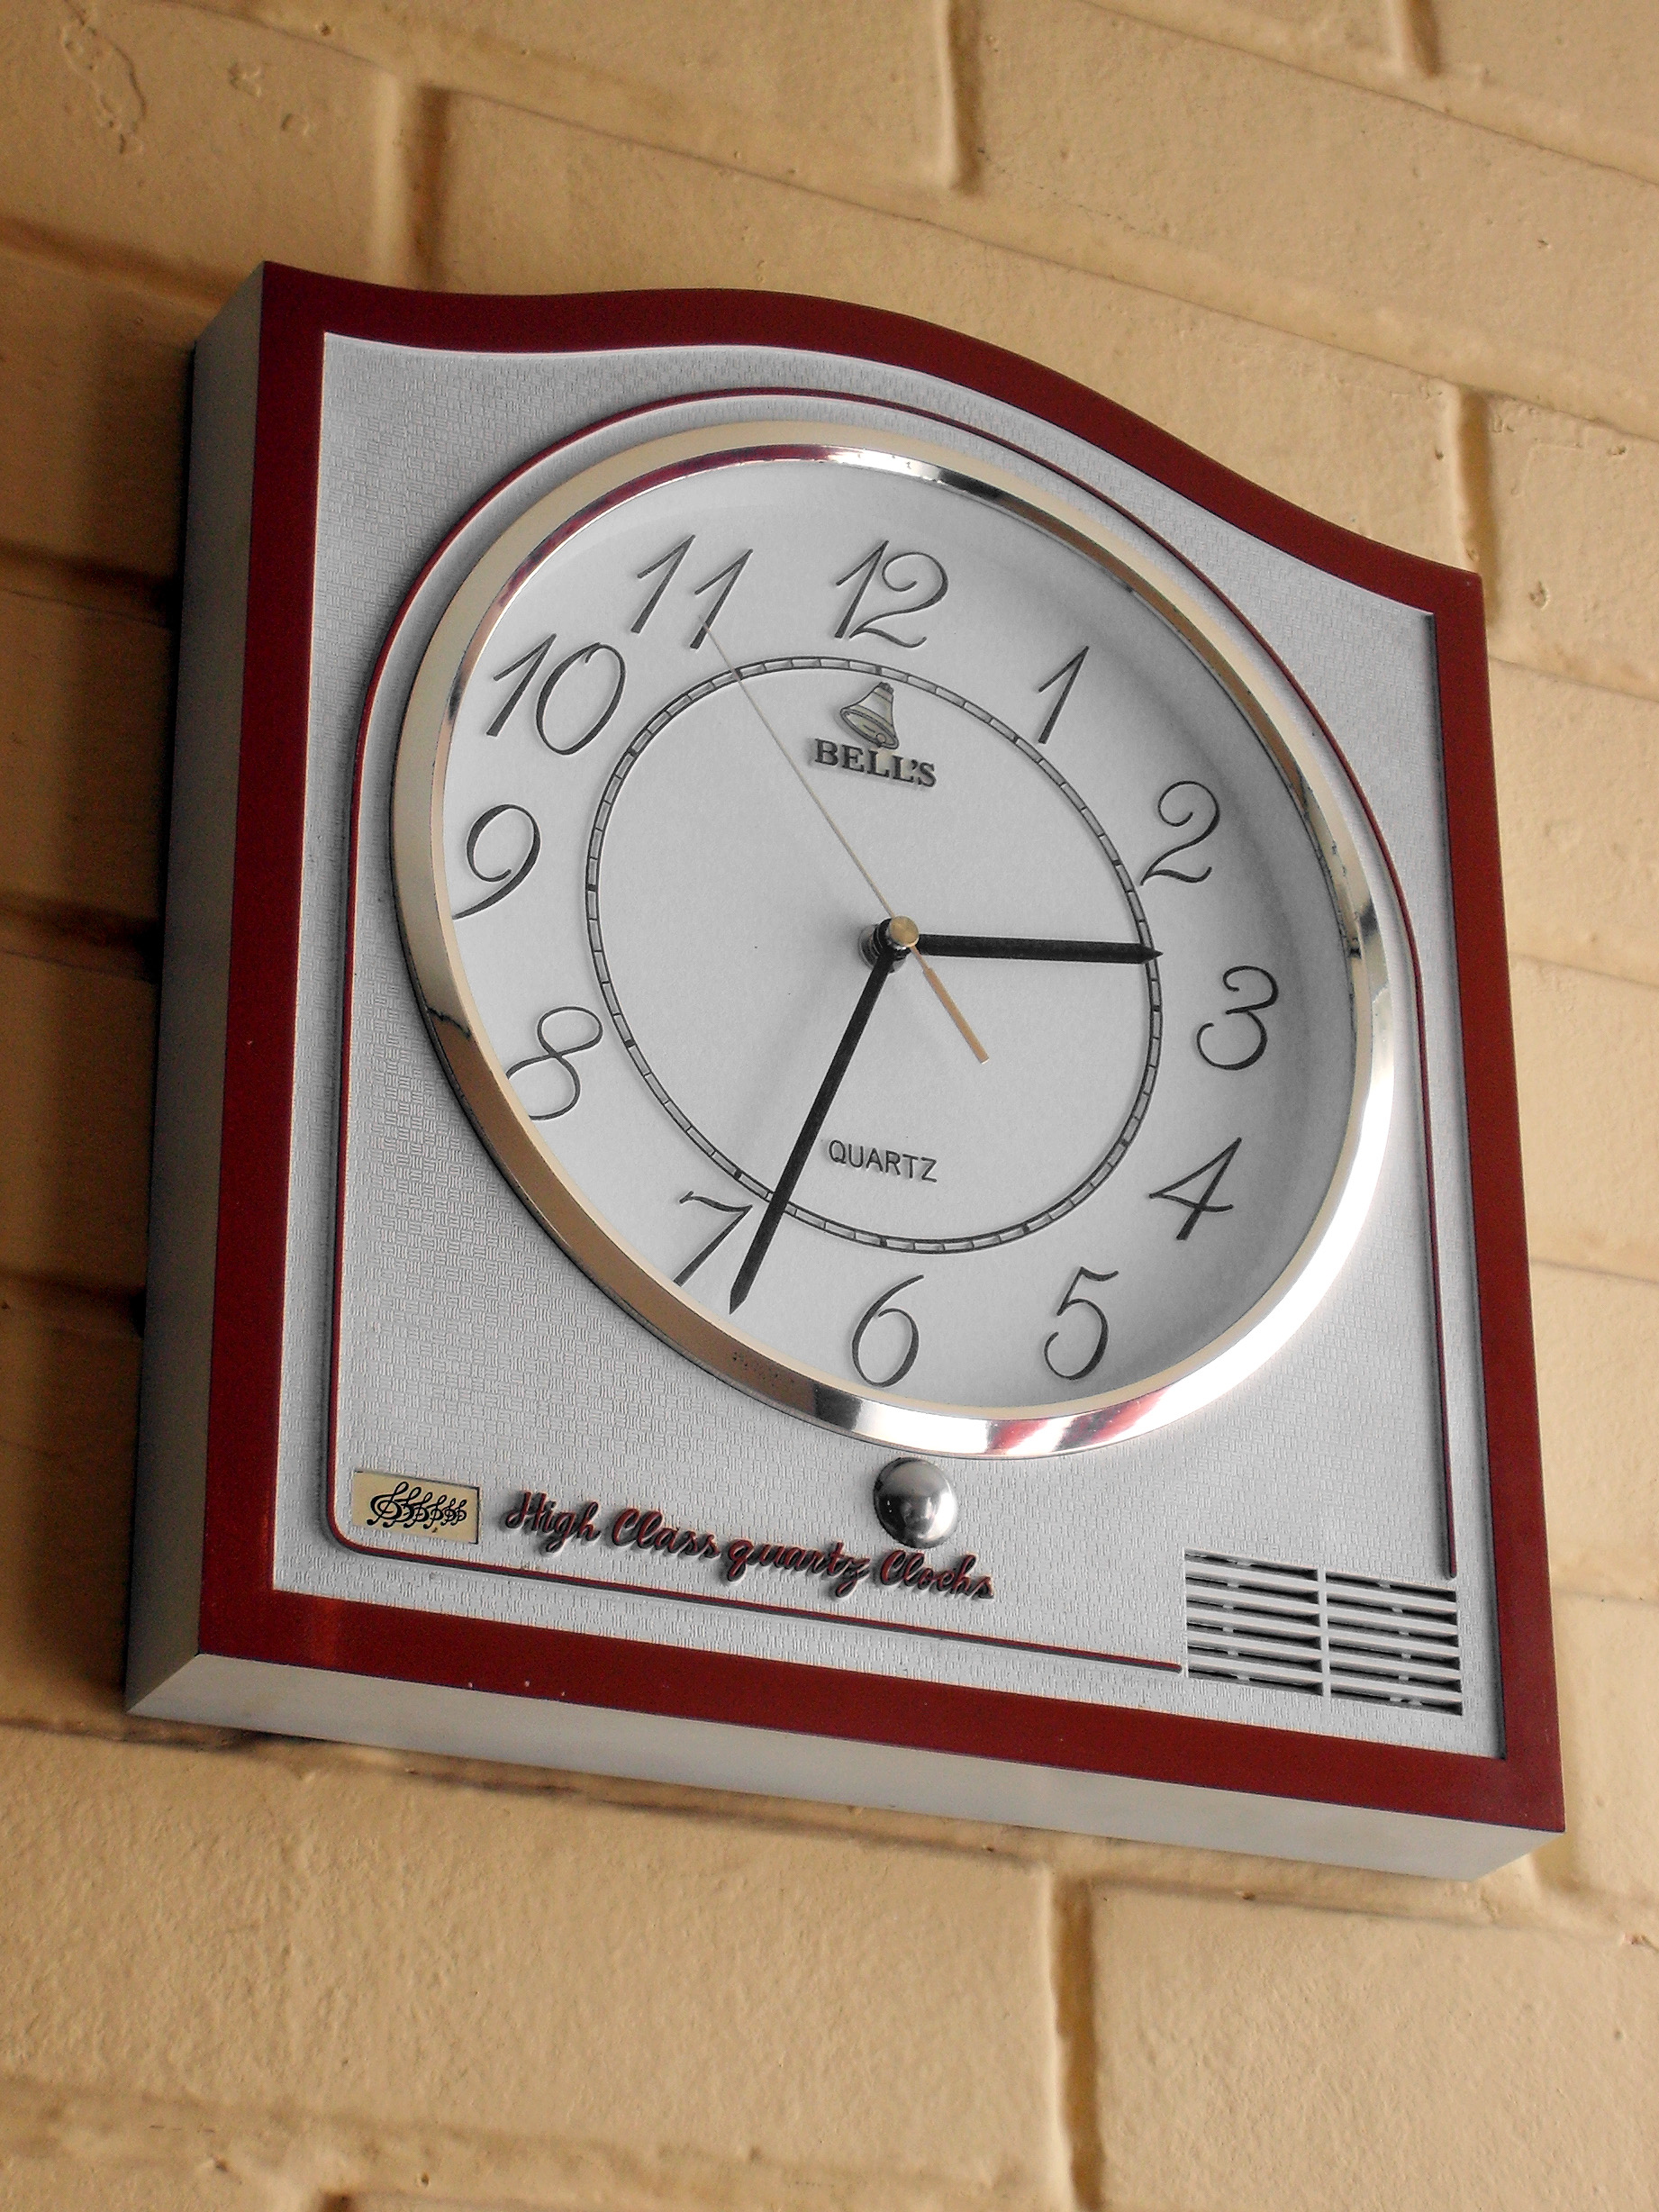 Clock in the wall images home wall decoration ideas clock in the wall filewhite wall clockg wikimedia commons filewhite wall clockg amipublicfo images amipublicfo Gallery